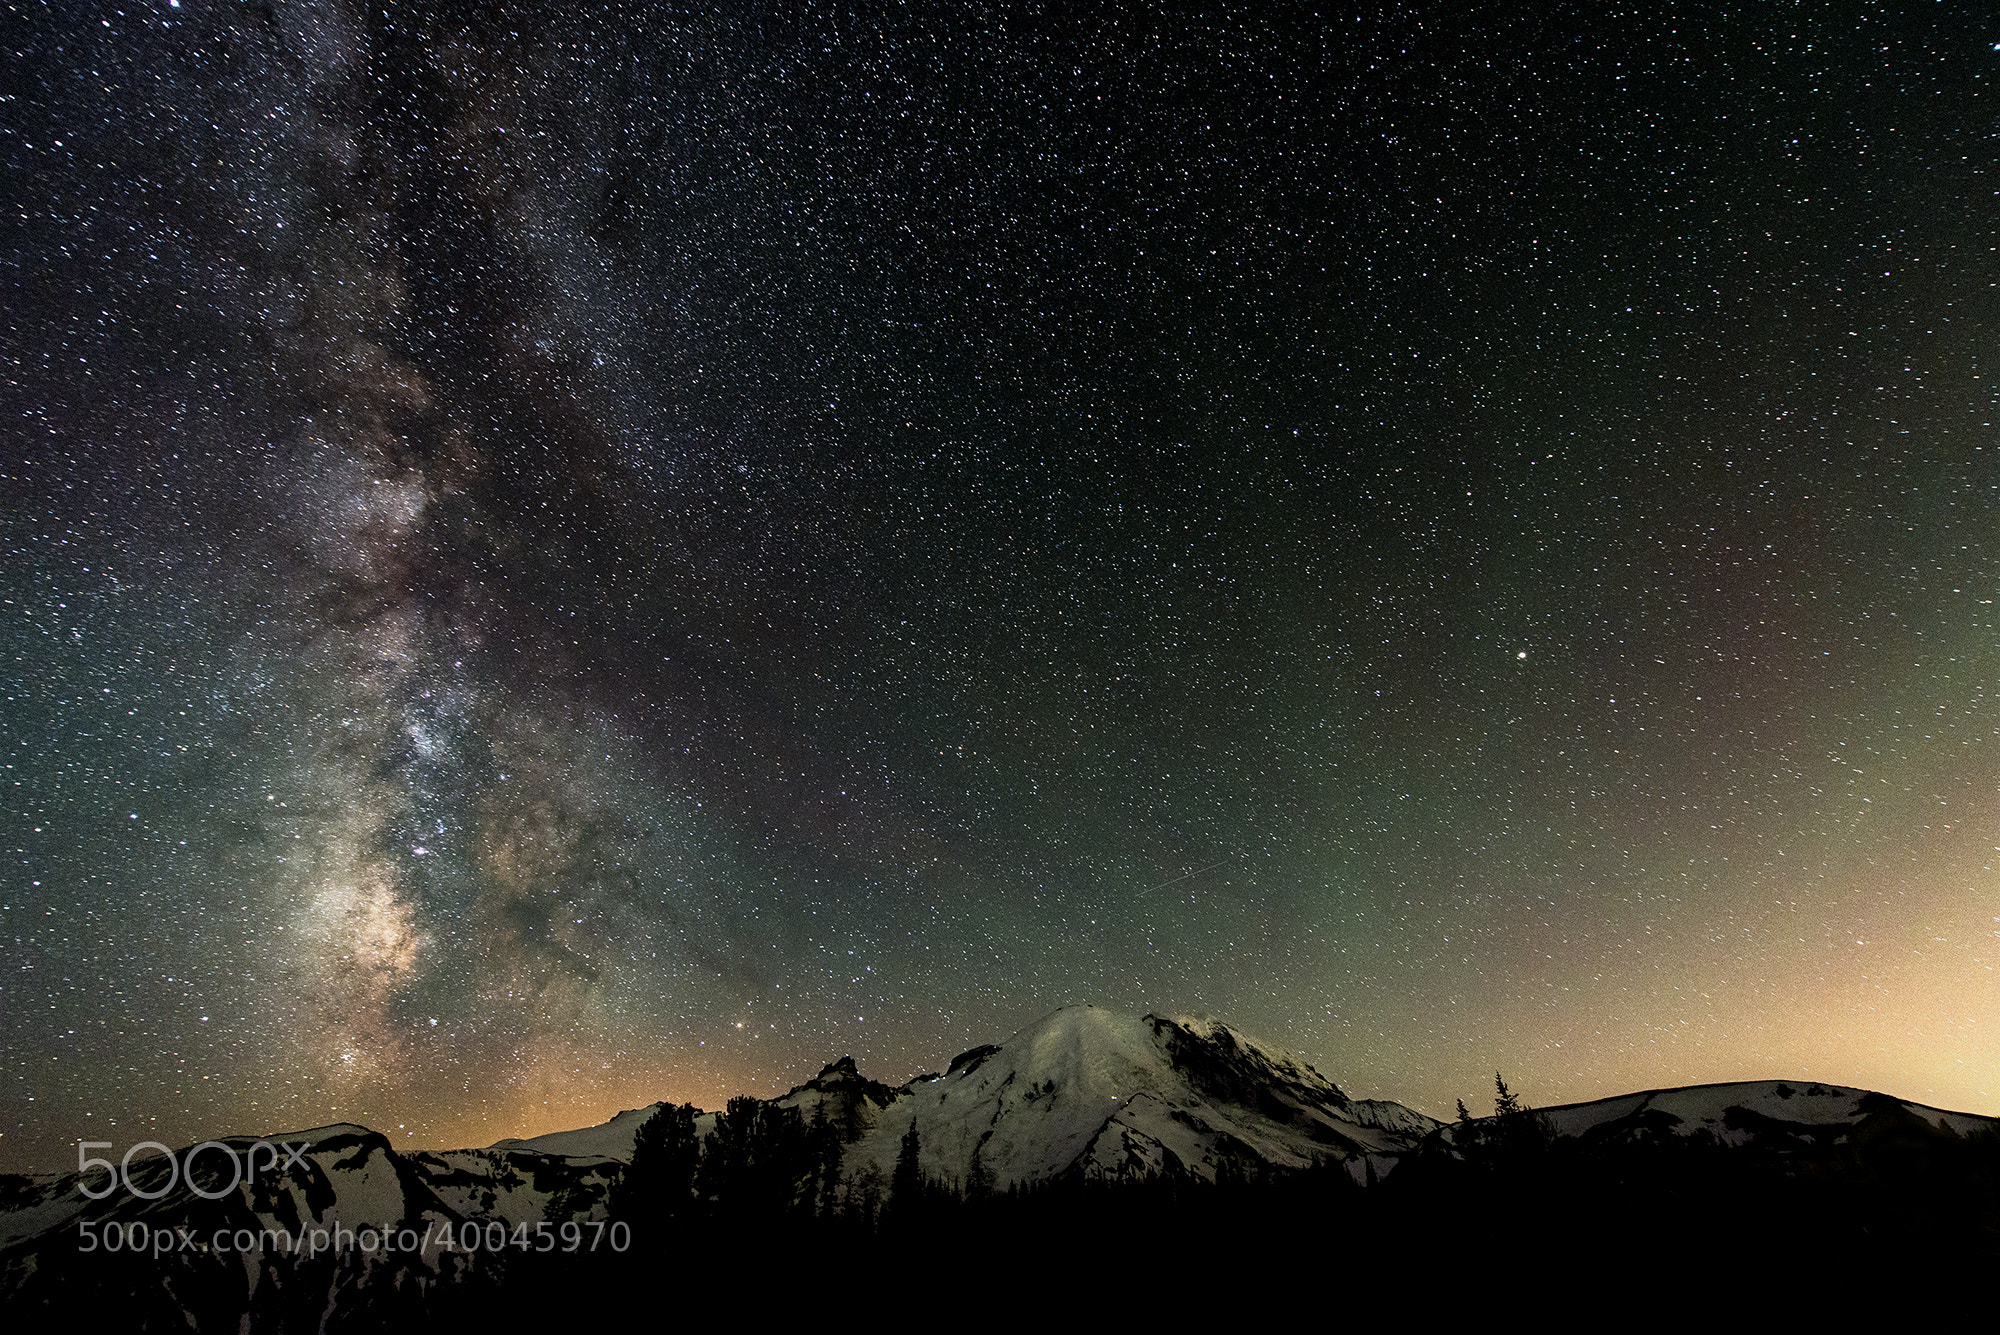 Photograph Late Night Show by Tobias Smith on 500px